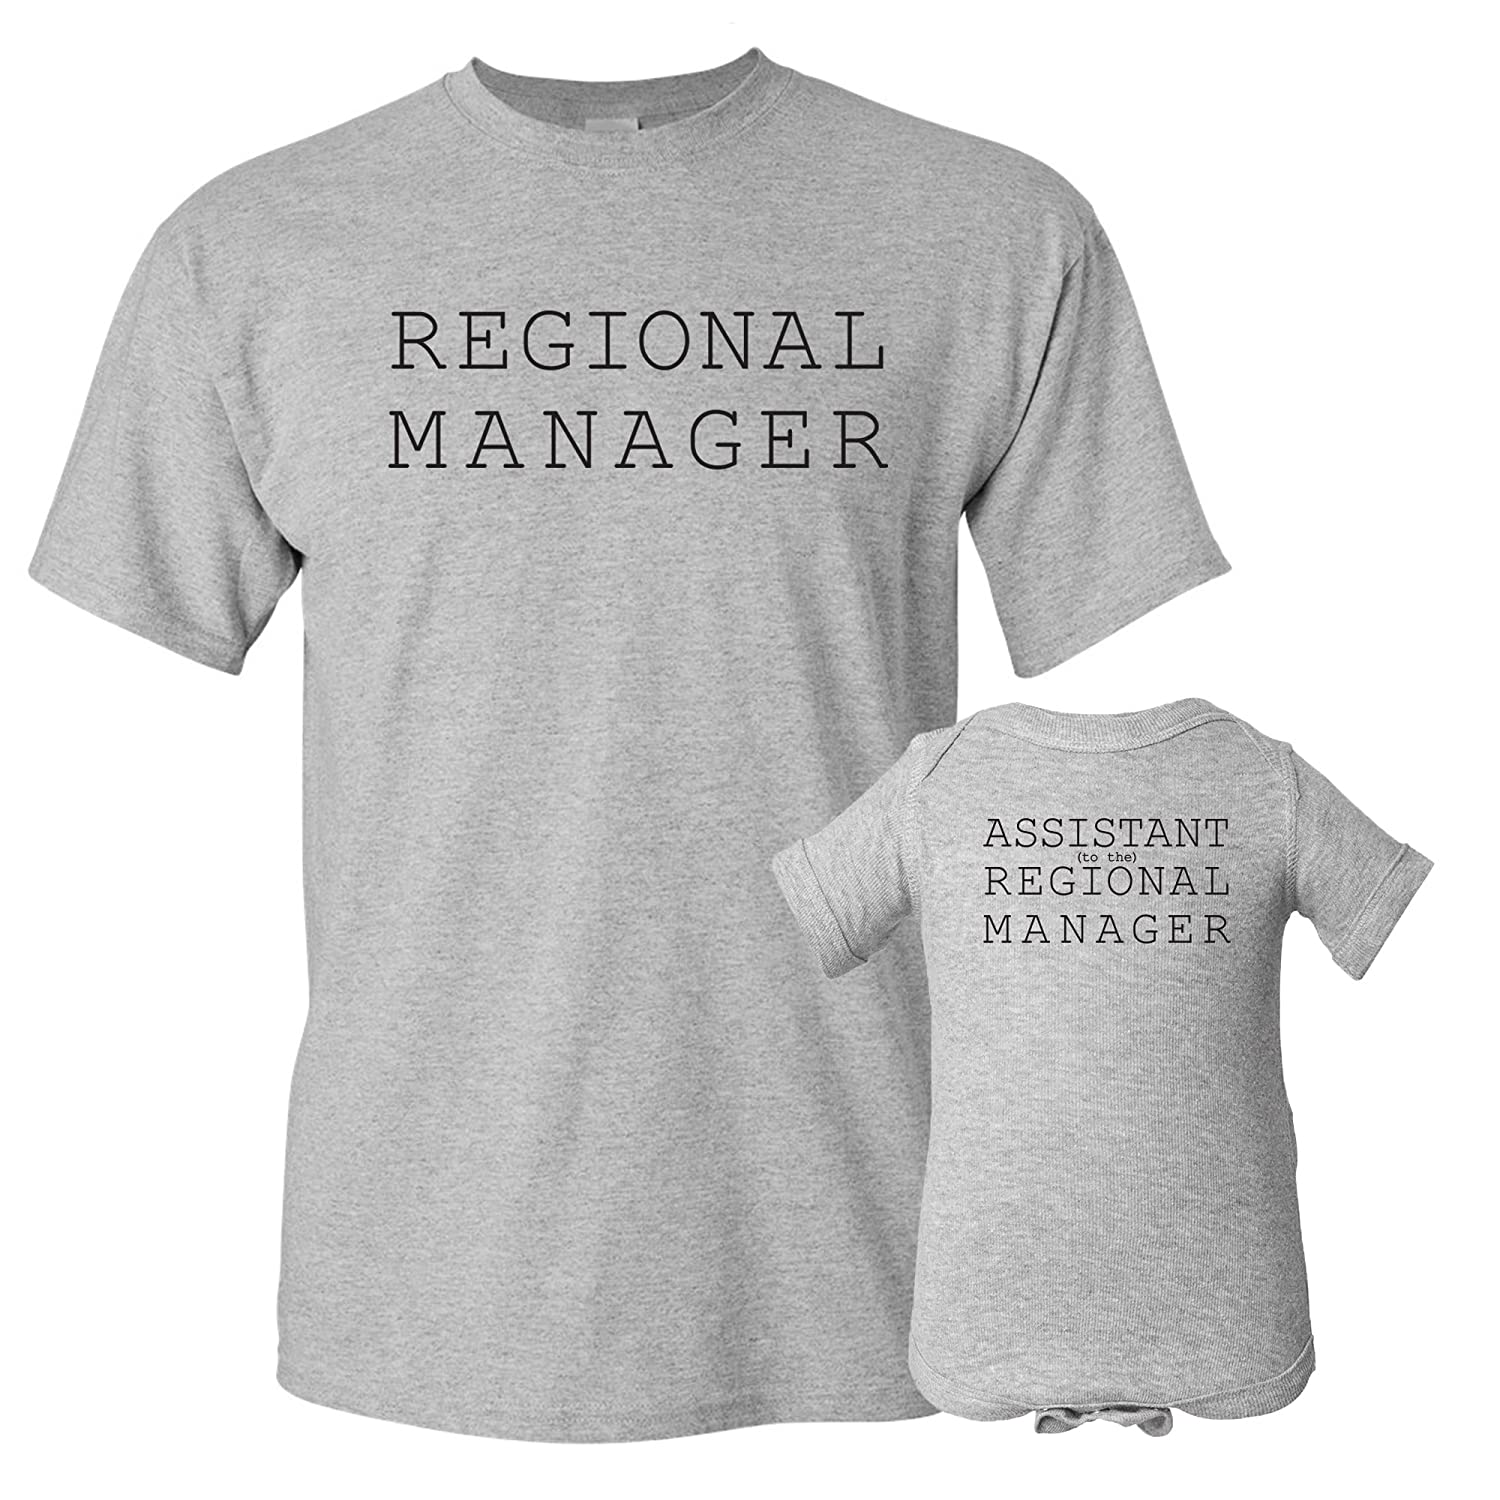 UGP Campus Apparel Regional Manager - Funny Joke Adult T Shirt & Infant Onesie Bundle